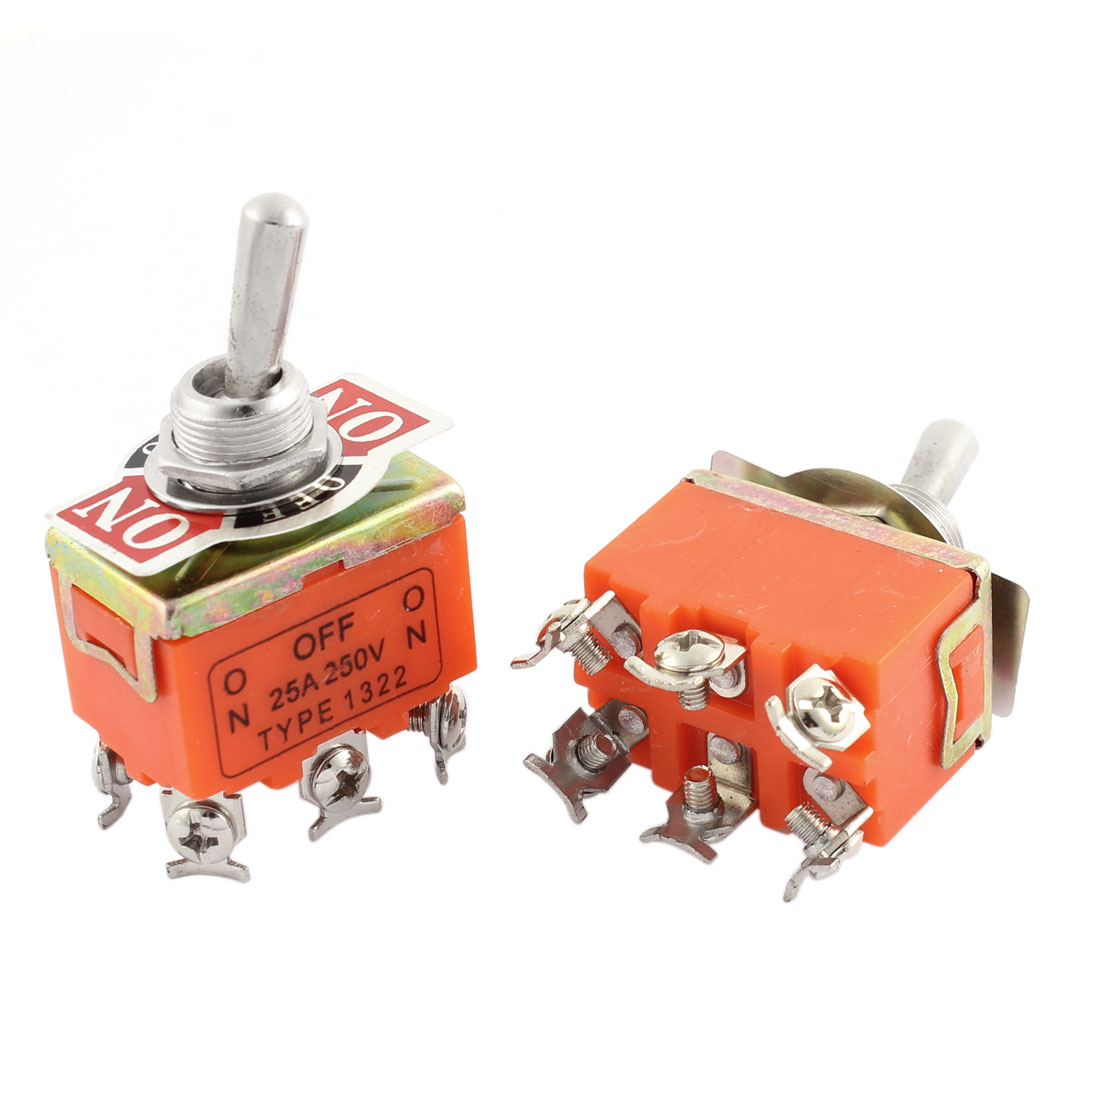 AC 250V 25A DPDT ON-OFF-ON Control 3 Positions 6 Screw Terminals Panel Mounting Self Locking Power Rocker Toggle Switch 2pcs Orange